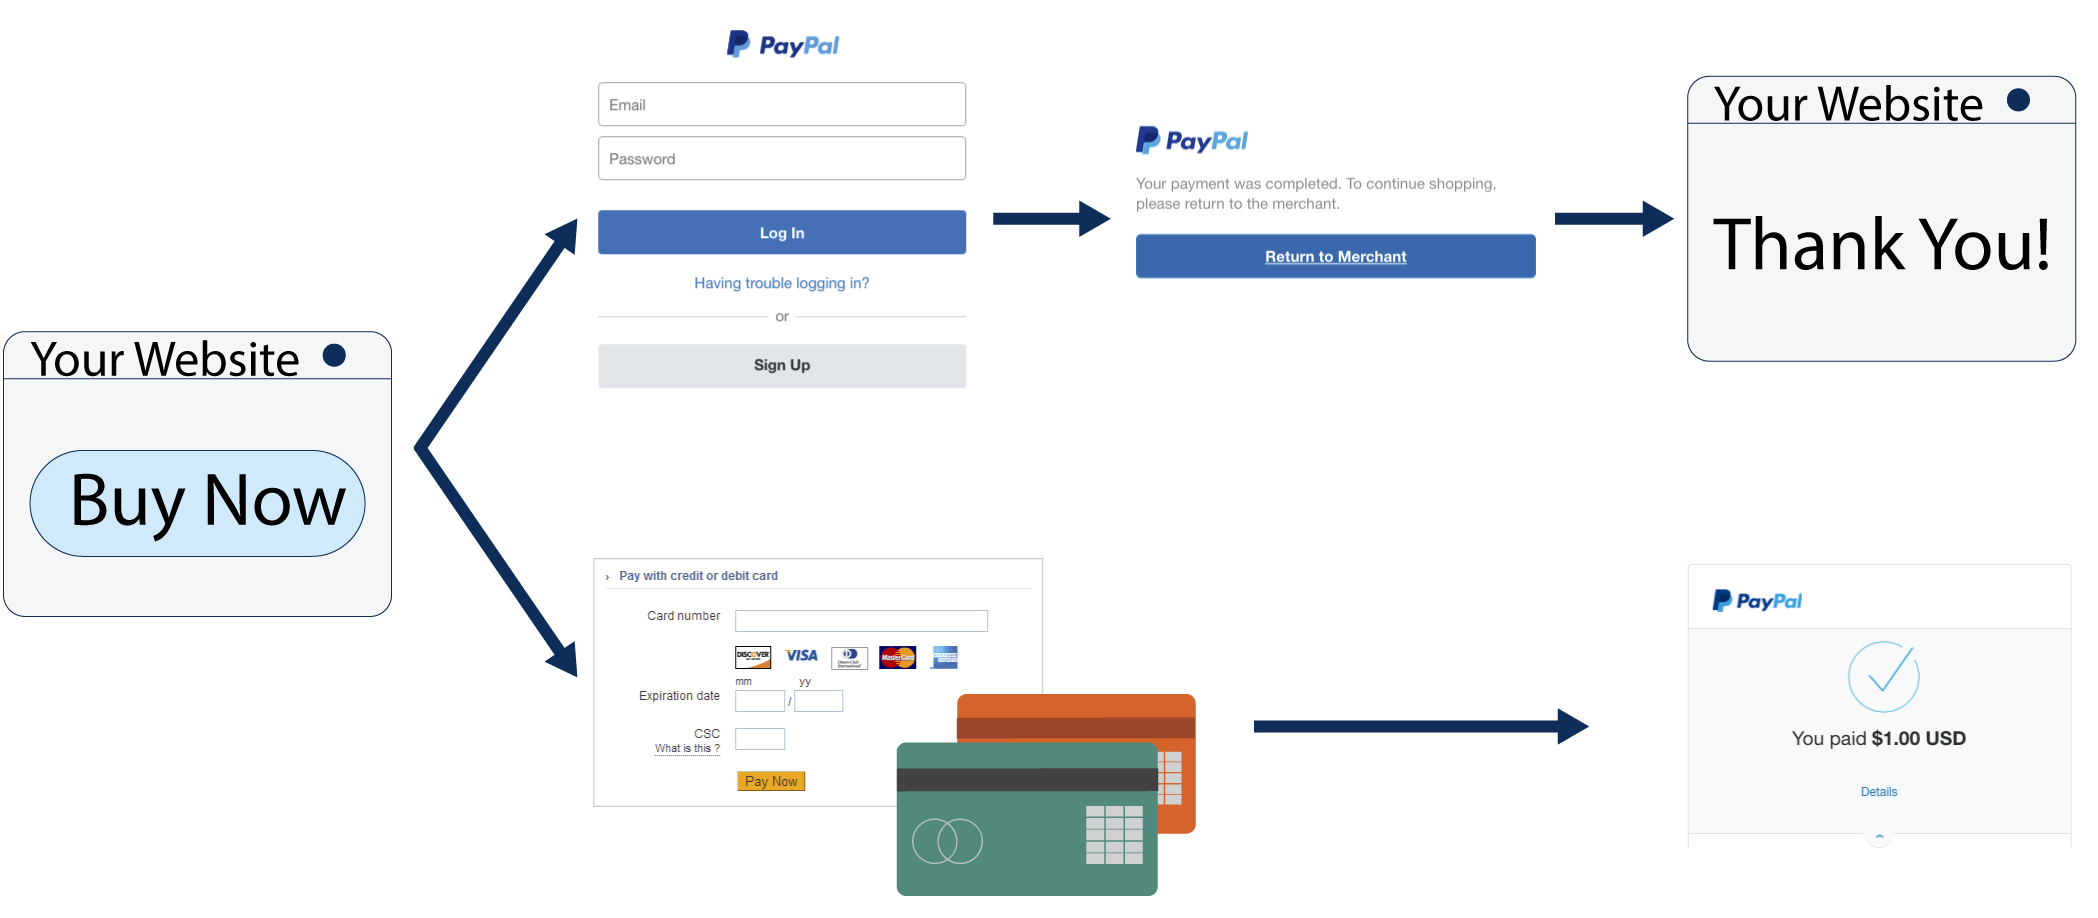 PayPal Tracking